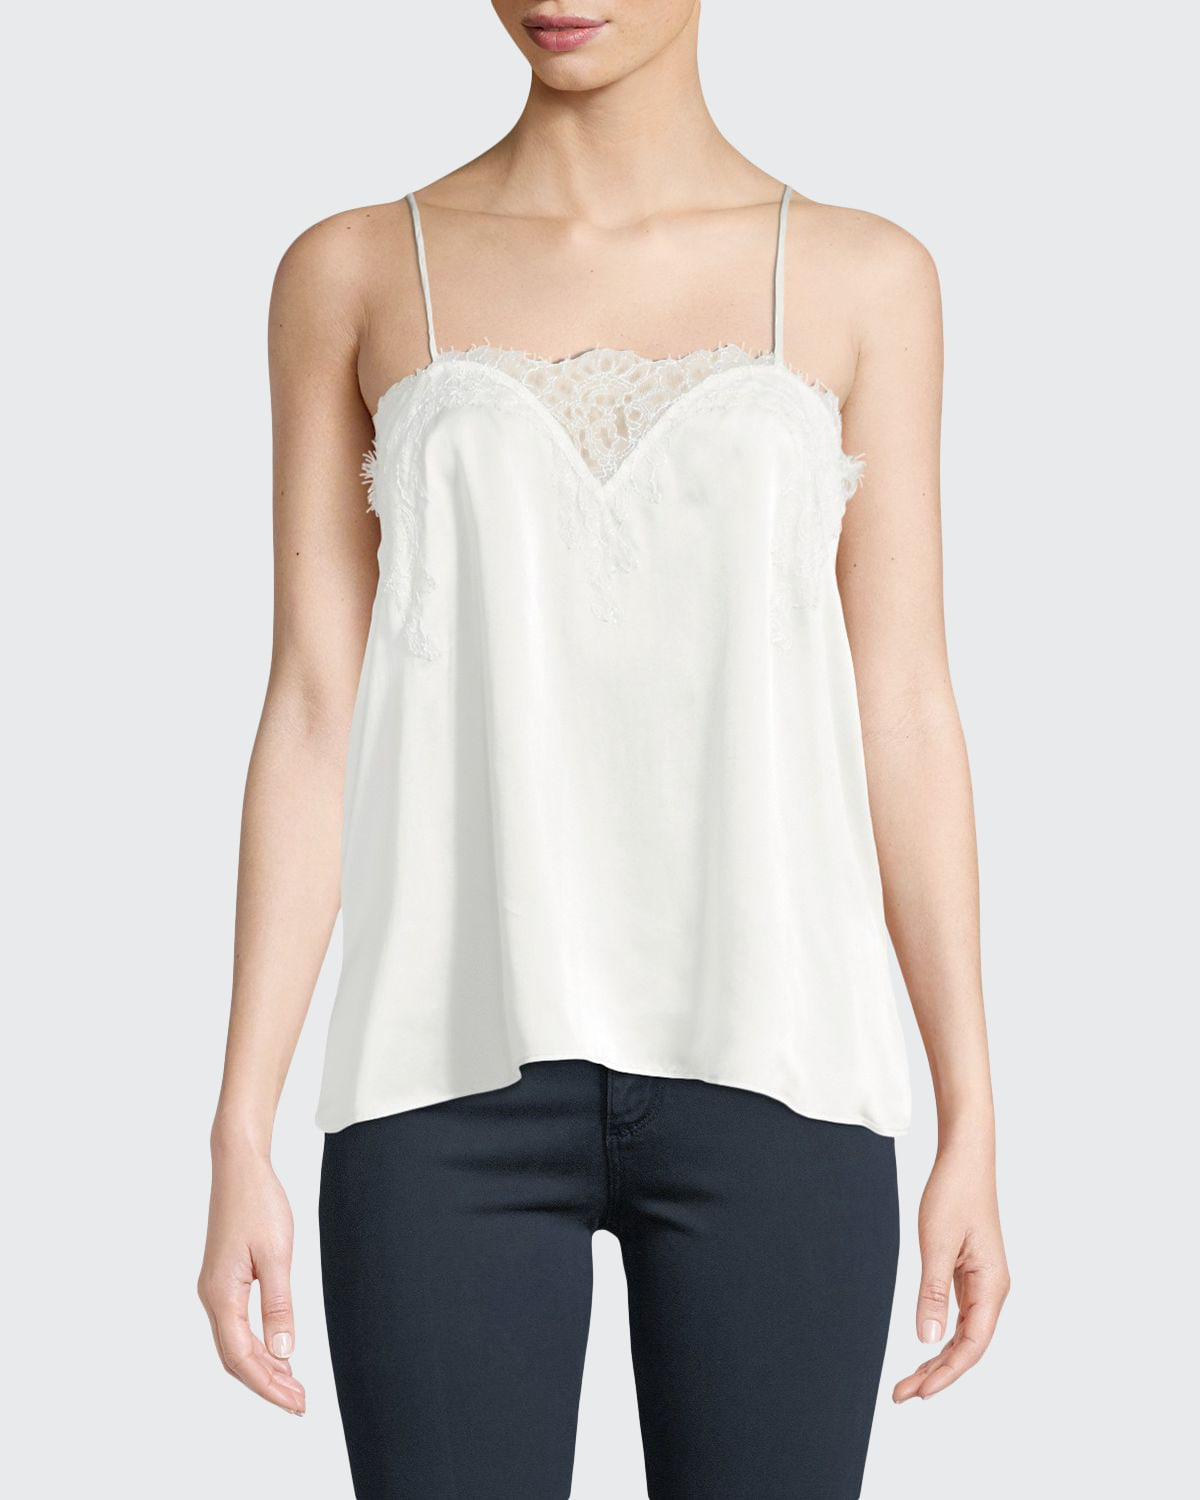 The Sweetheart Silk Charmeuse Camisole